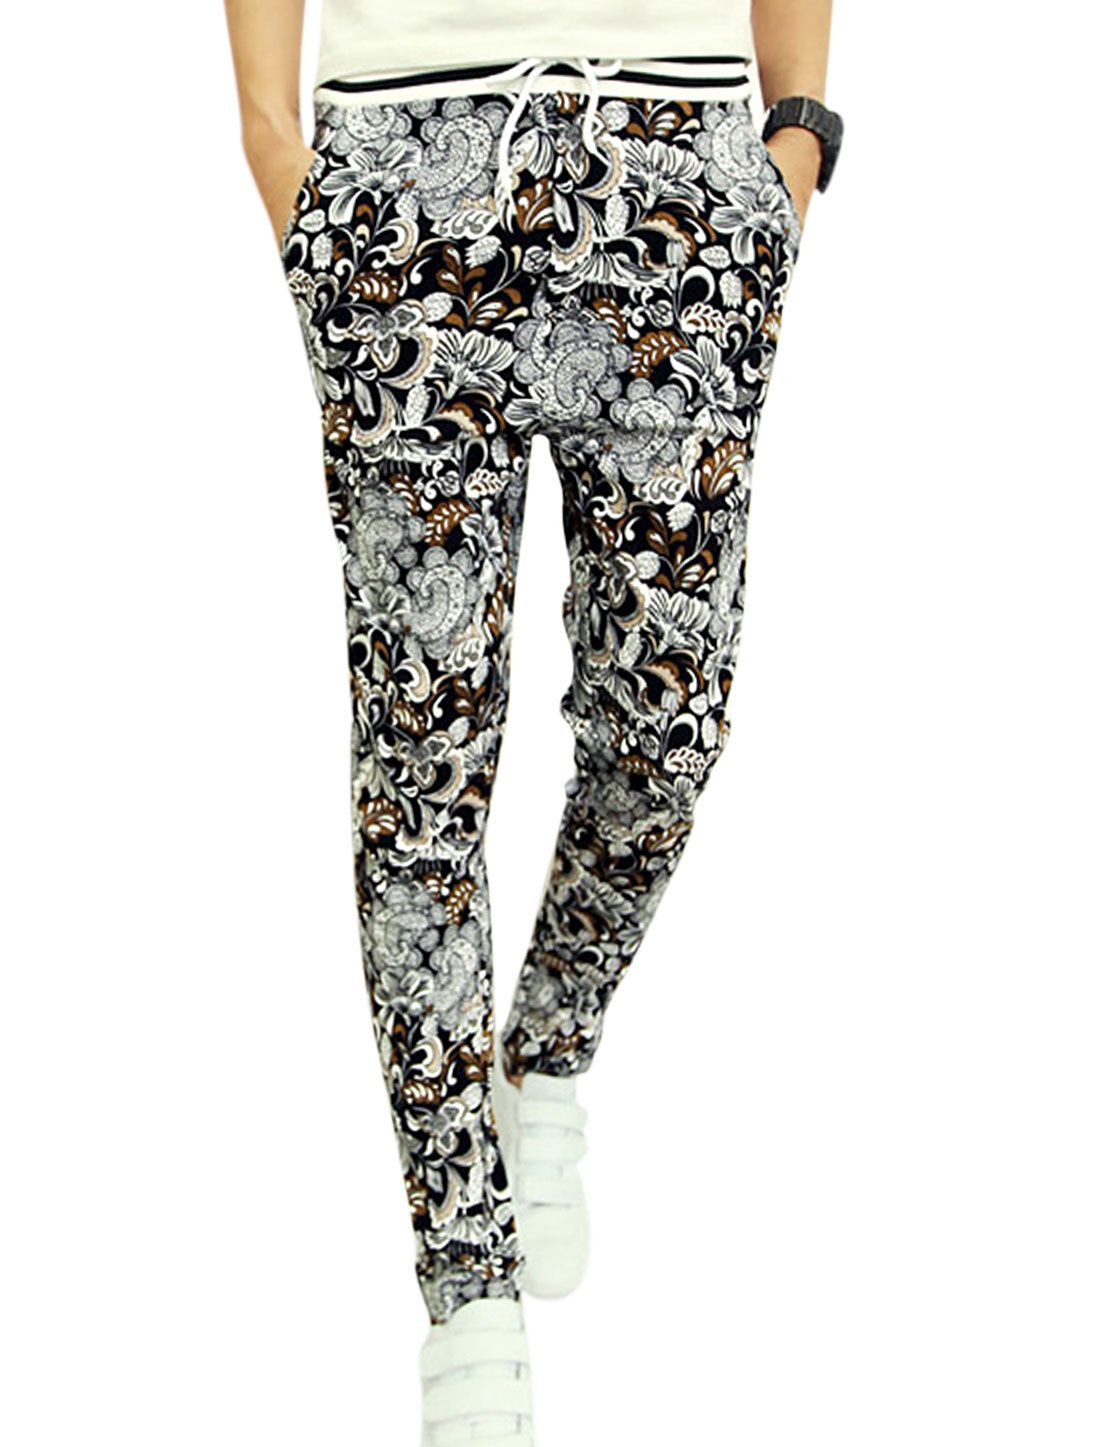 Men Stretchy Wasit Floral Prints Paisleys Newly Pants Black Multicolor W28